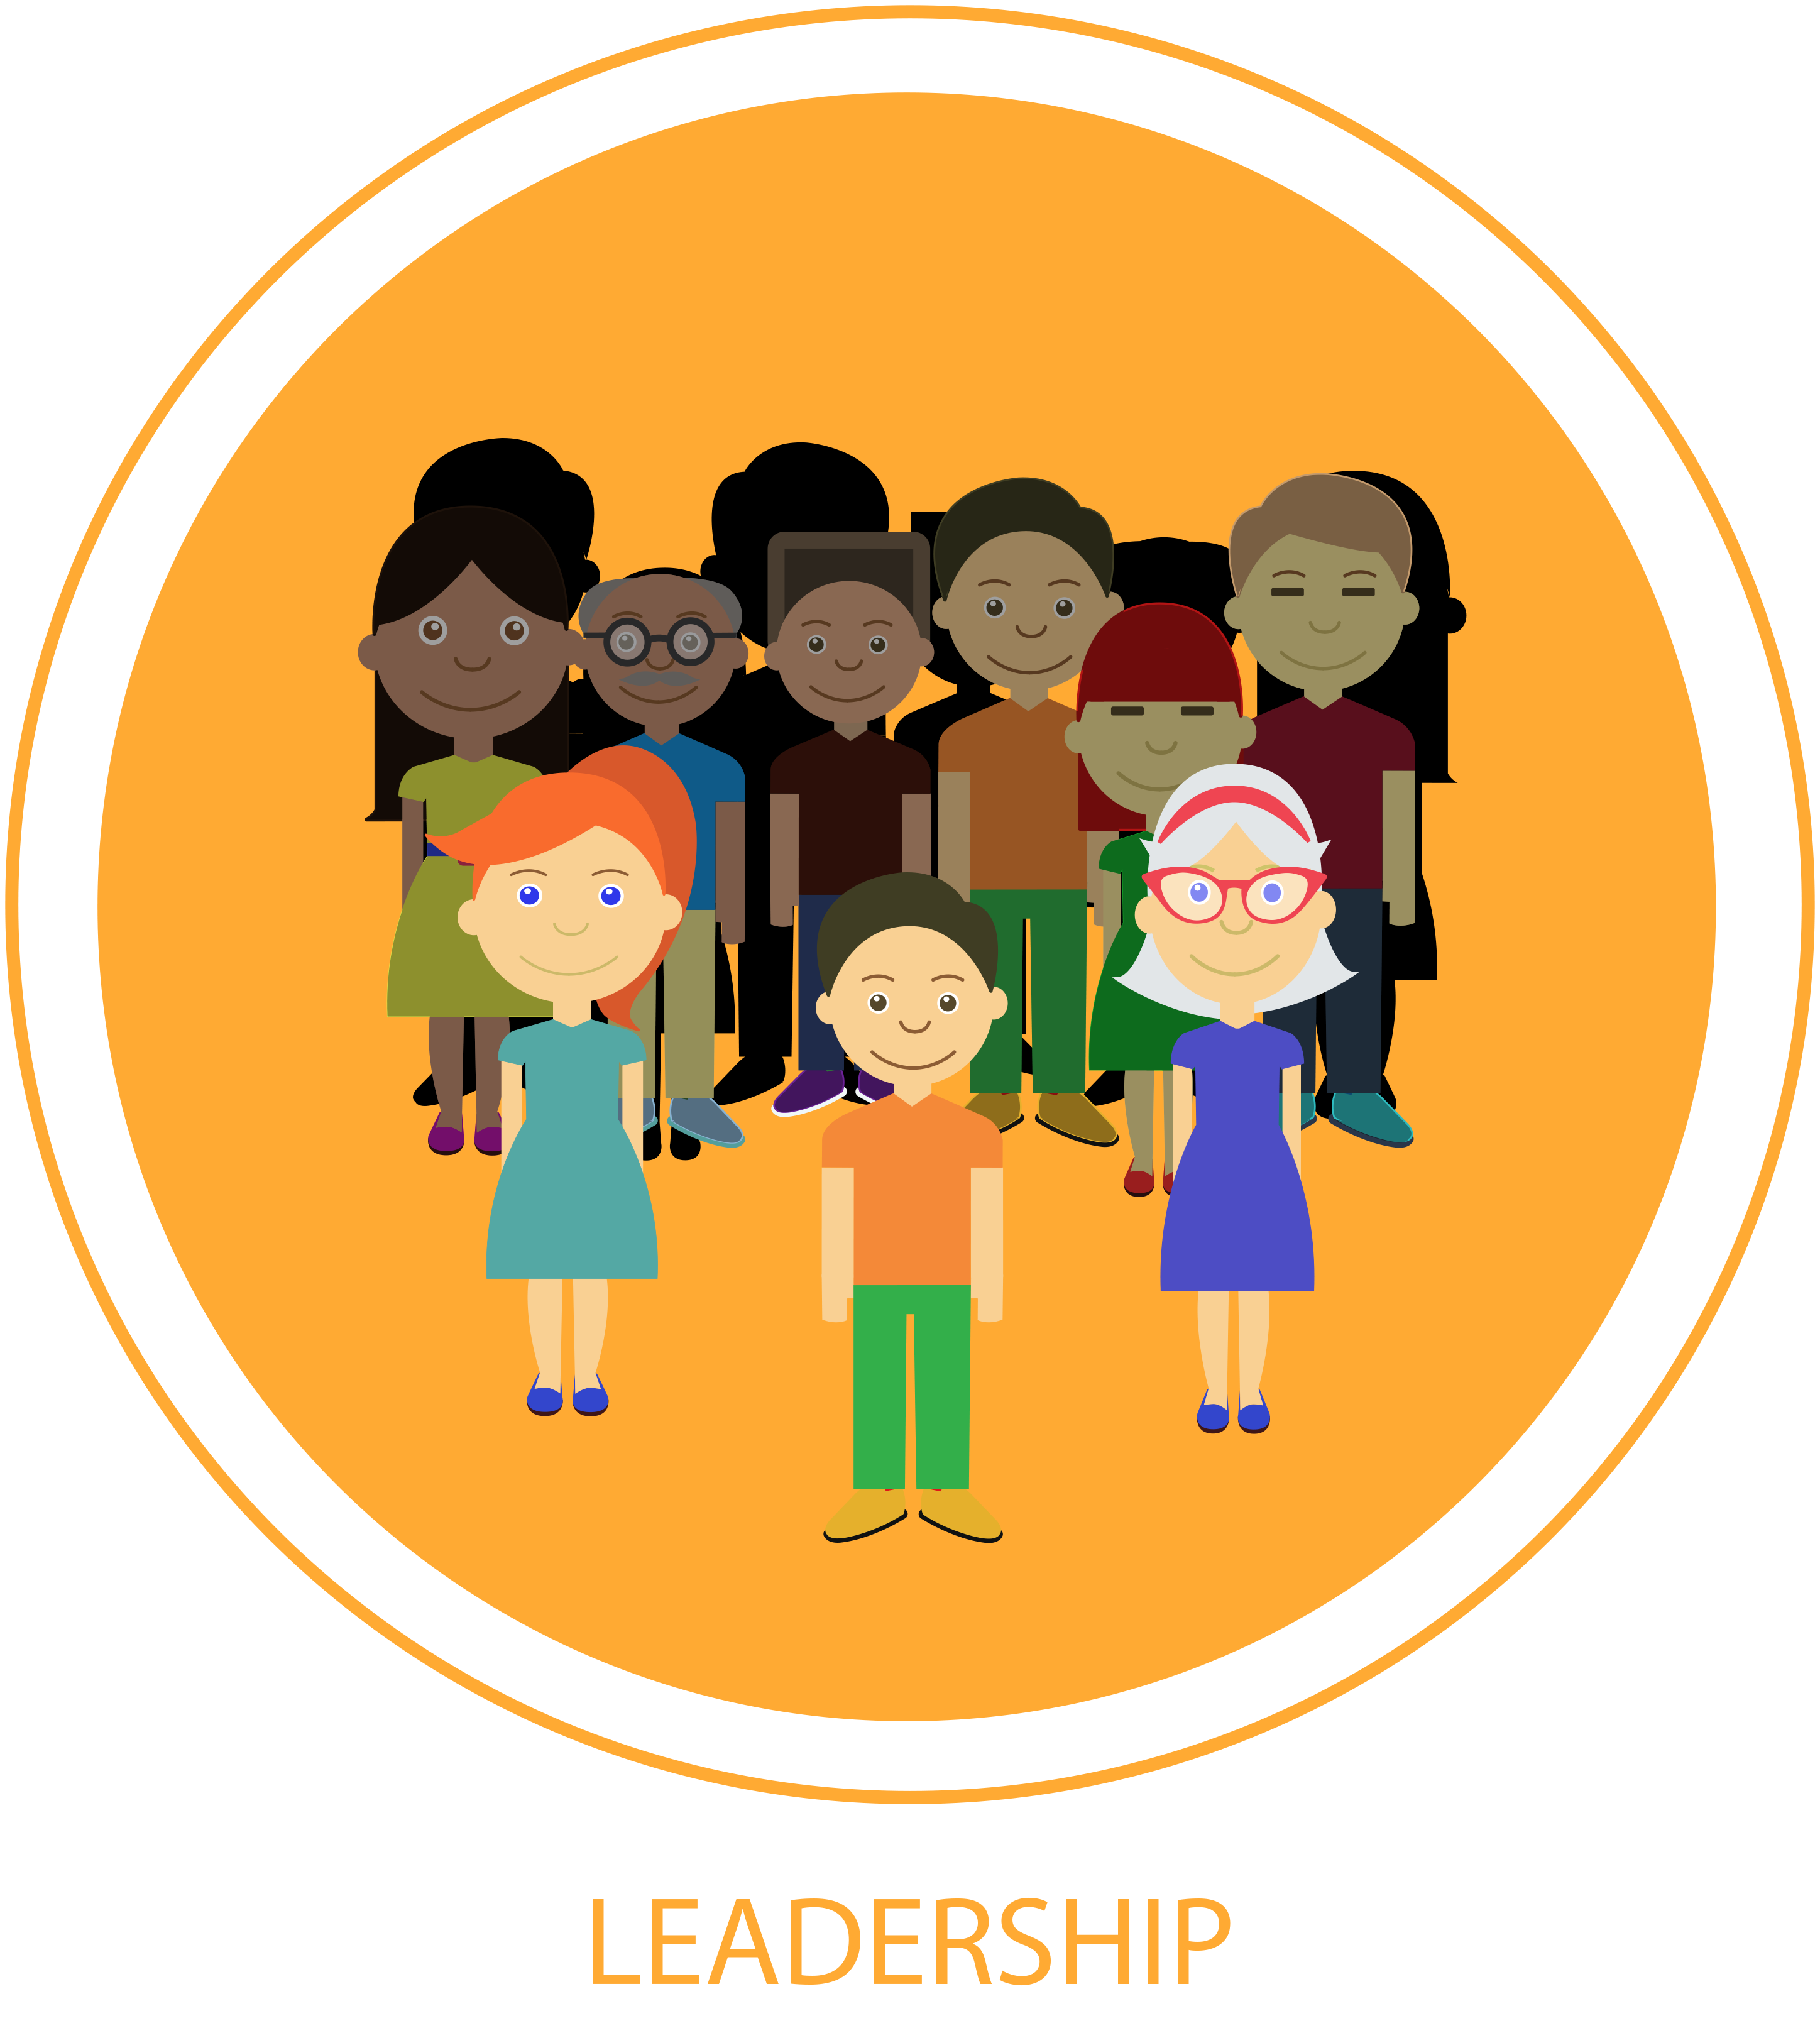 svg royalty free International standards for community. Leadership clipart personal quality.